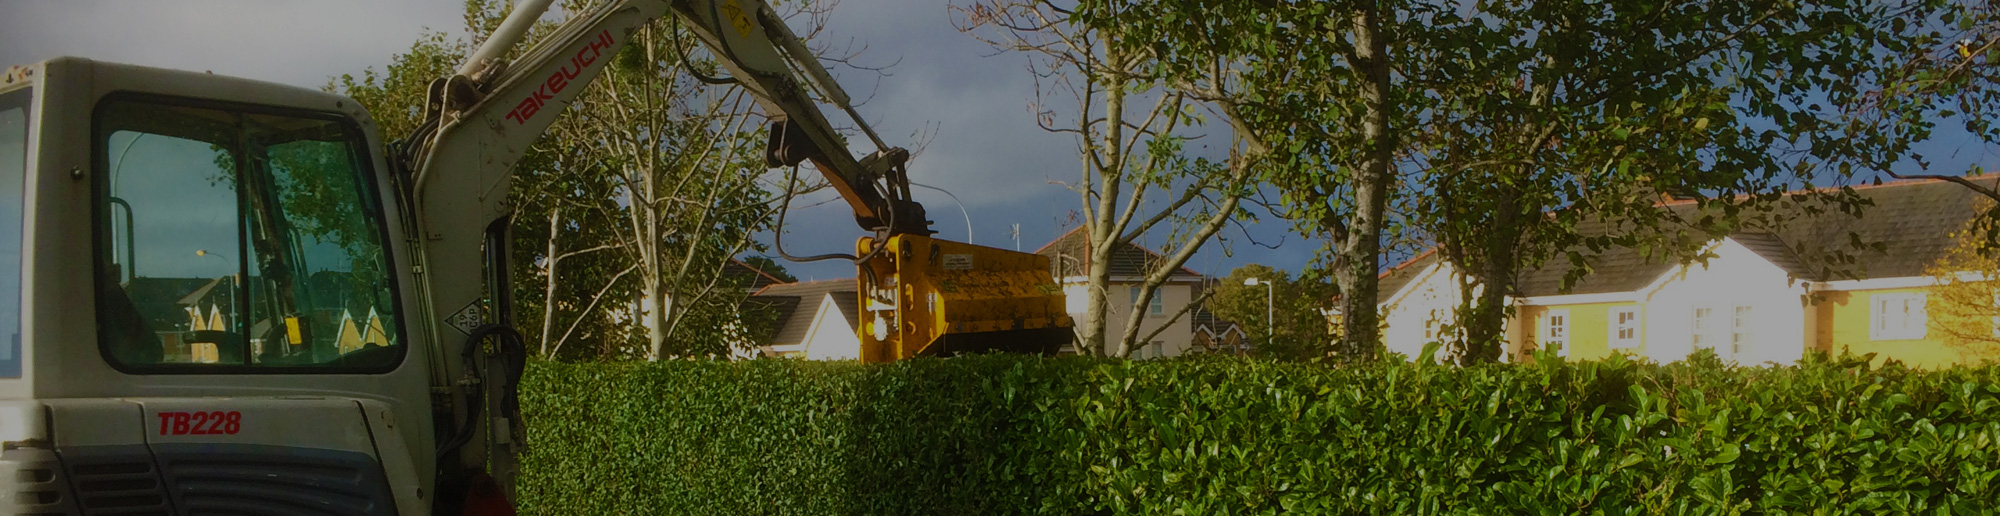 HEDGE CUTTING MAINTENANCE SERVICES